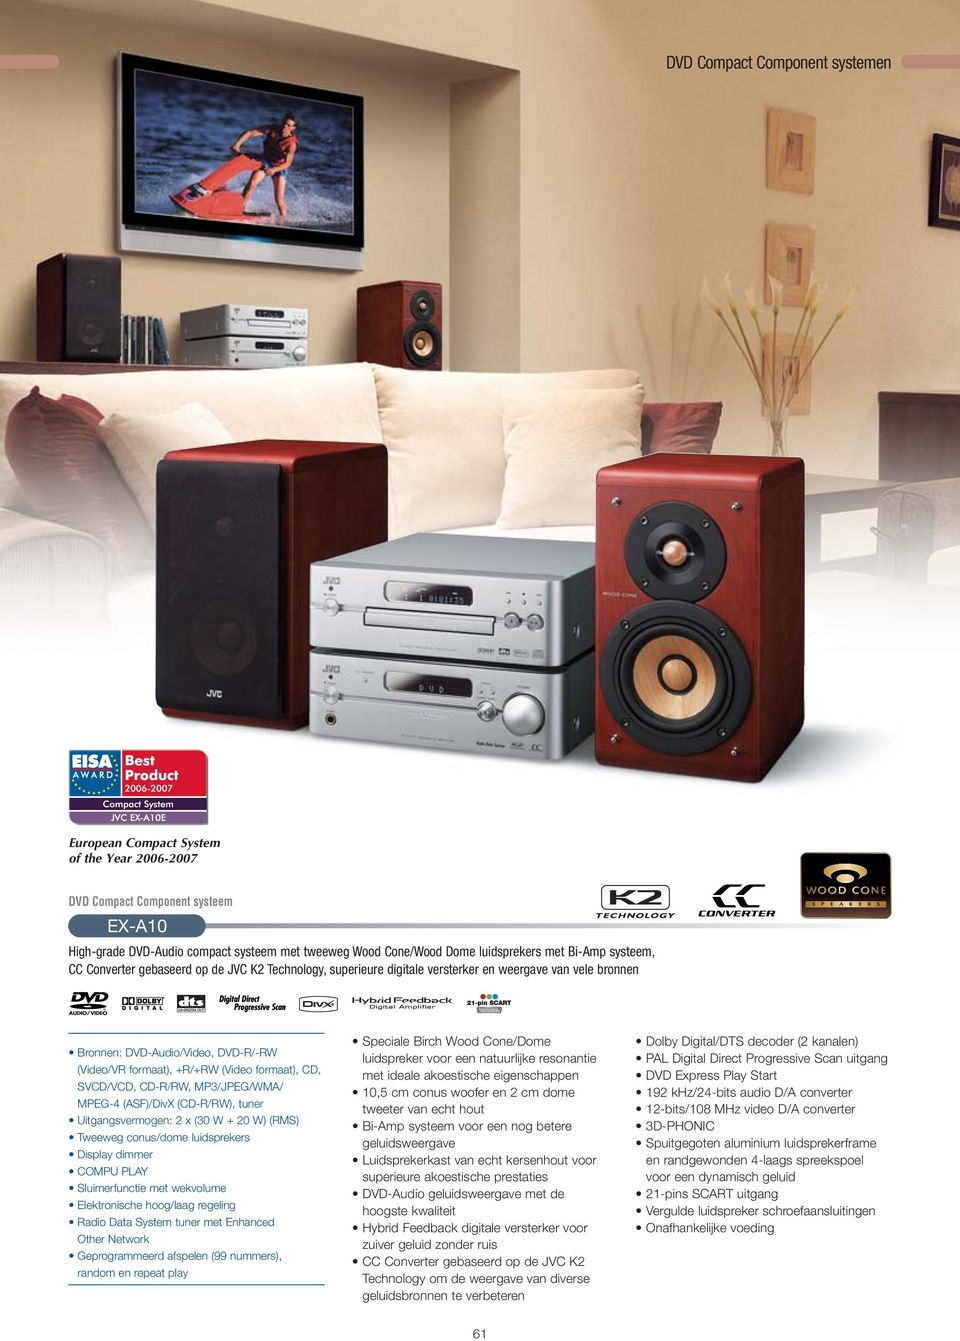 formaat), CD, SVCD/VCD, CD-R/RW, MP3/JPEG/WMA/ MPEG-4 (ASF)/DivX (CD-R/RW), tuner Uitgangsvermogen: 2 x (30 W + 20 W) (RMS) Tweeweg conus/dome luidsprekers Display dimmer COMPU PLAY Sluimerfunctie